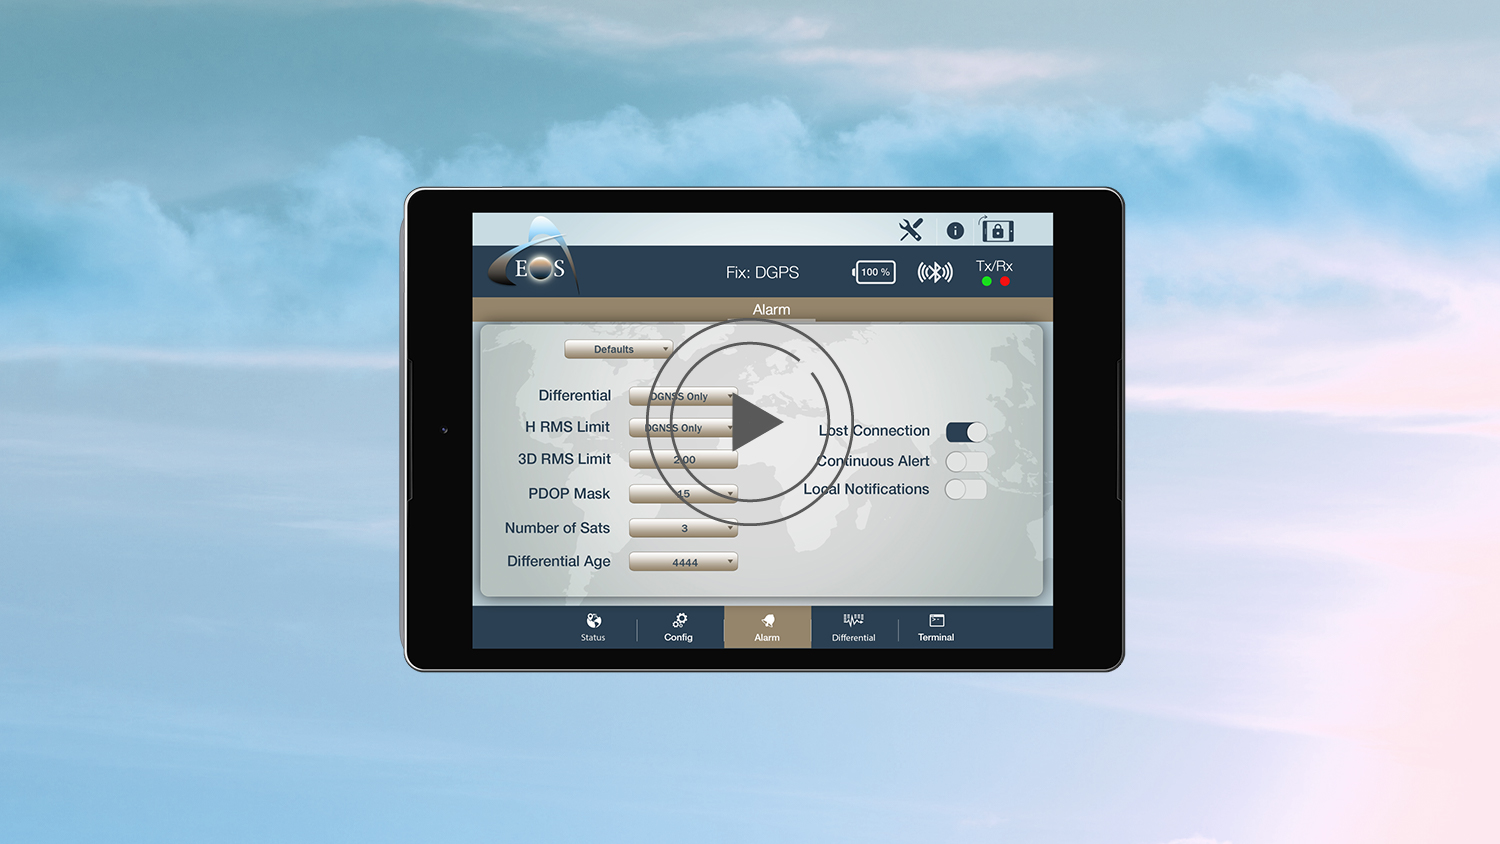 Eos Tools Pro- Video overview for Android app users GPS GNSS GIS alarms RTK